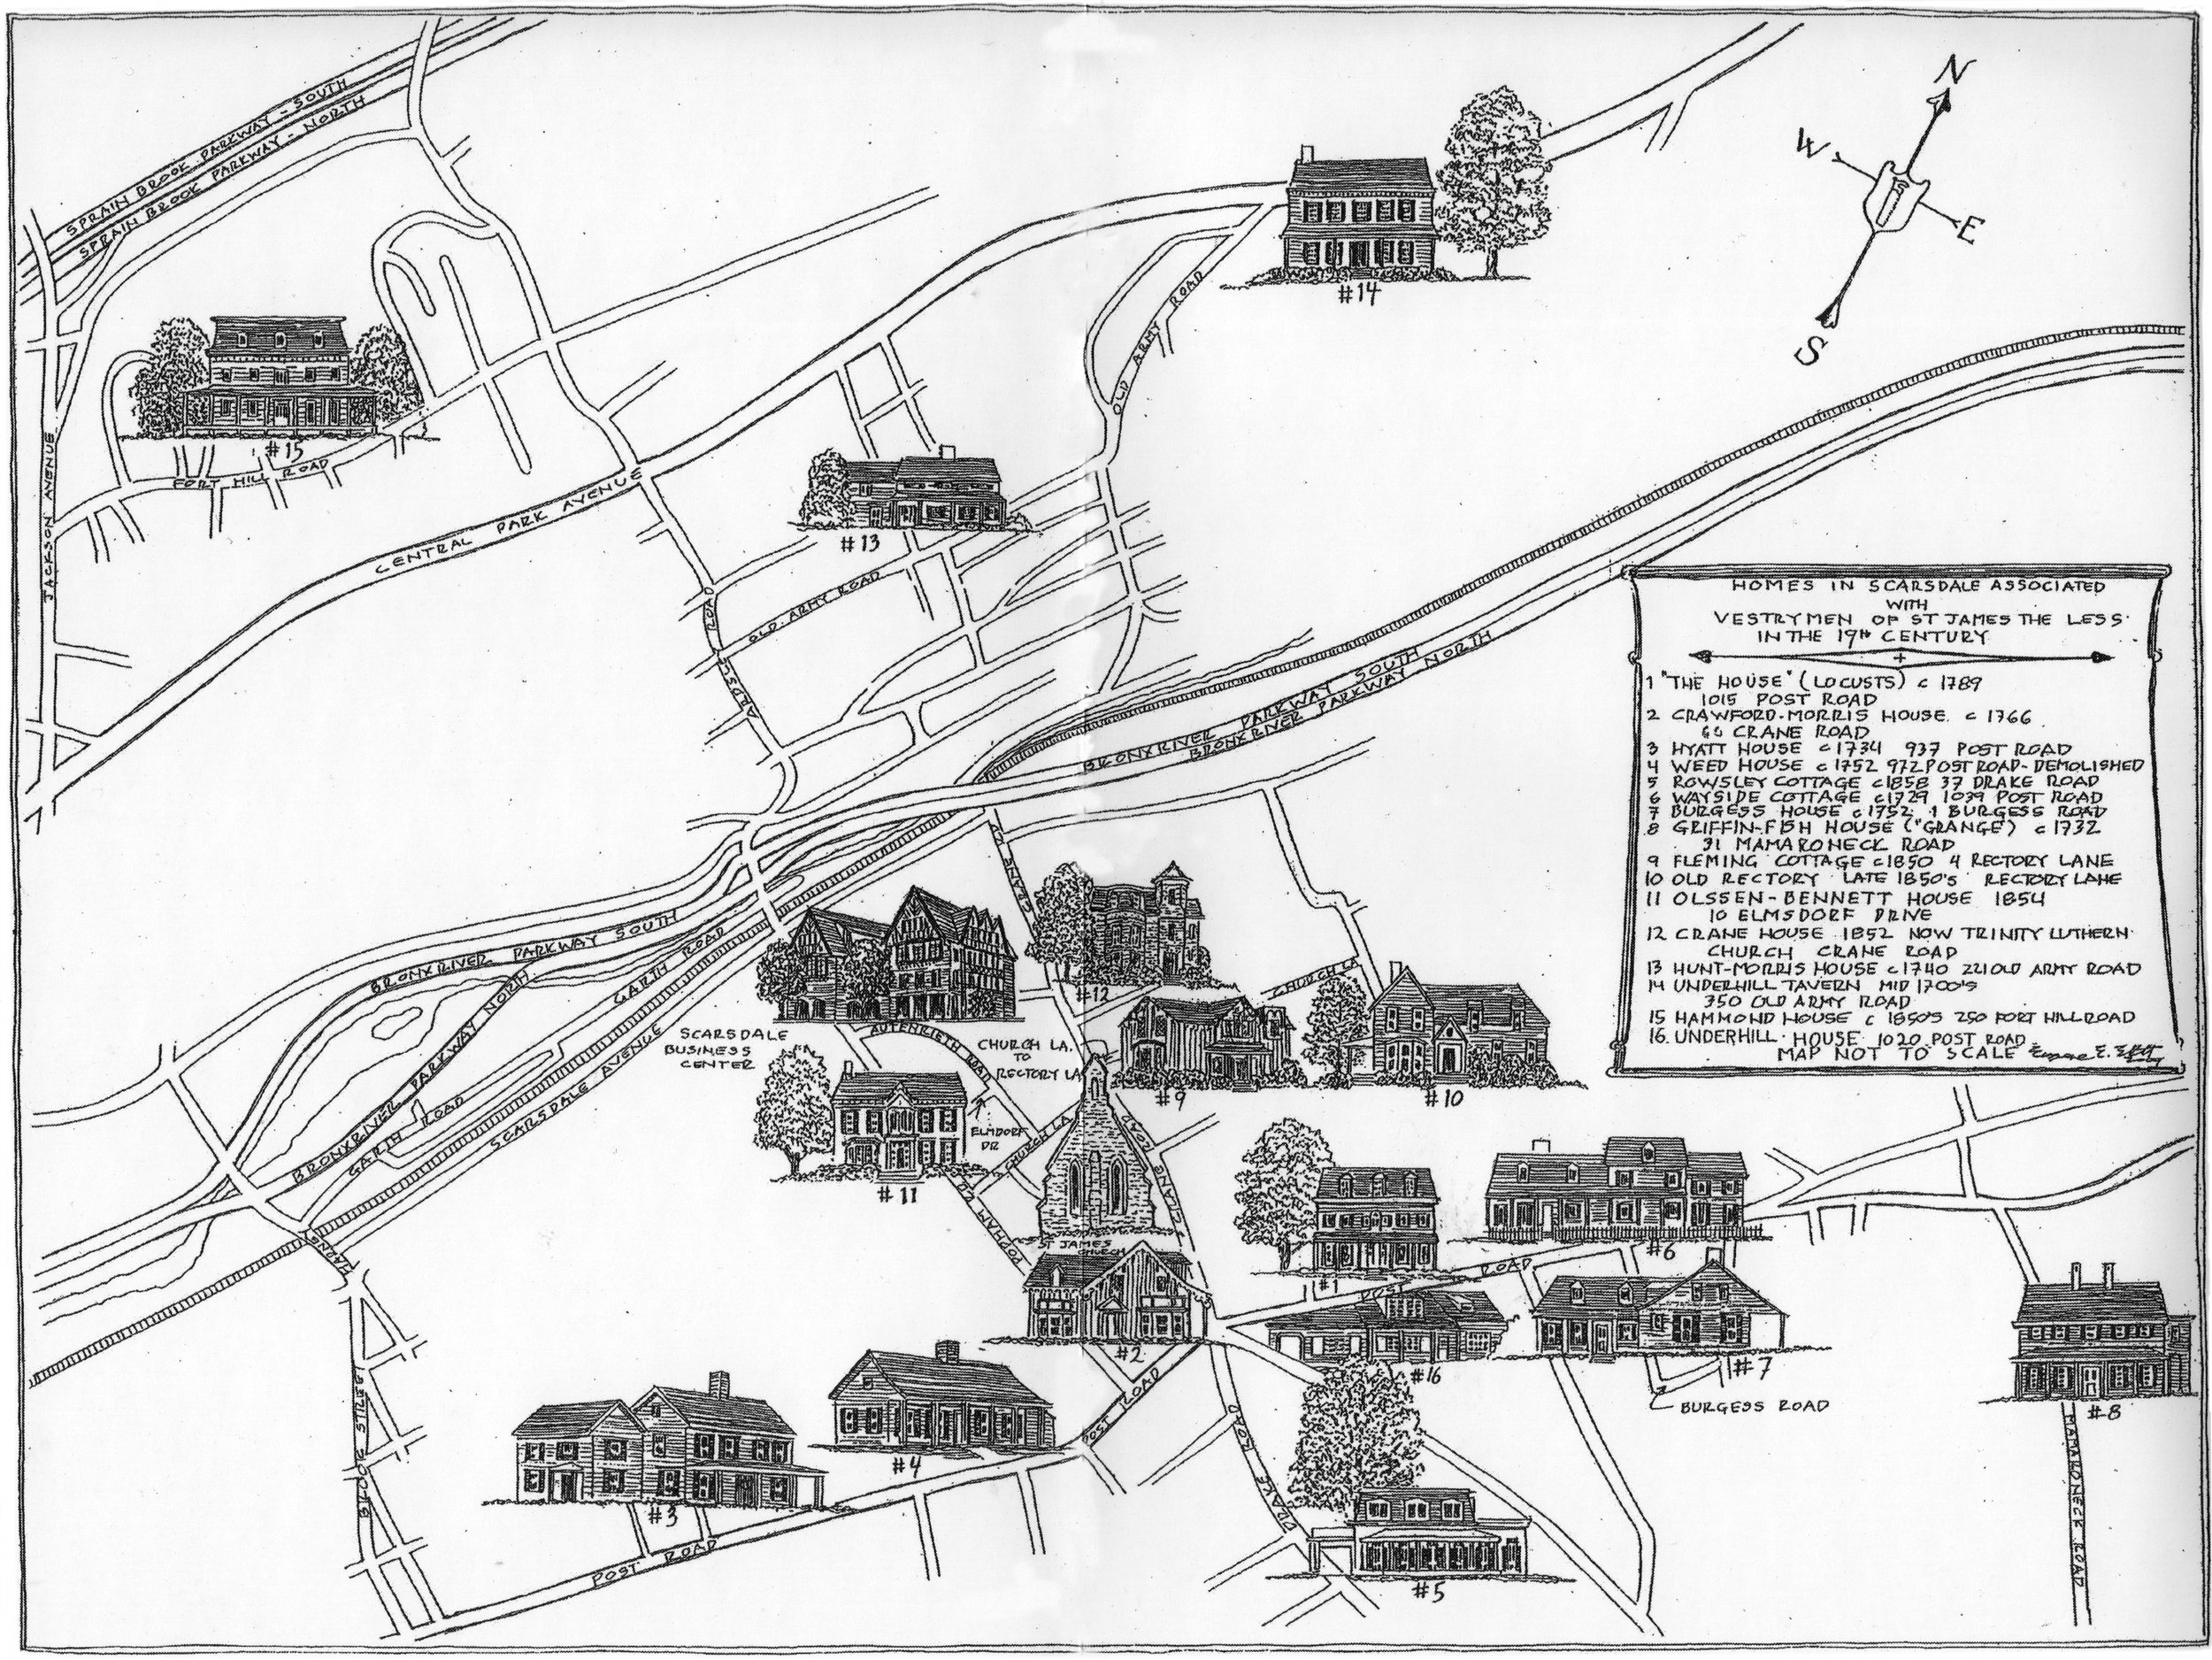 This lovely illustrated map, showing some of the early houses in Scarsdale (and Greenville), is from Louise Kinsey Clark's book about the history of the Church of St. James the Less,  From Rural Church to Suburban Parish . Many of the early farmhouses in Scarsdale were built along the Post Road, which was once a Native American trail. Unfortunately the Weed House (#4) has since been torn down.